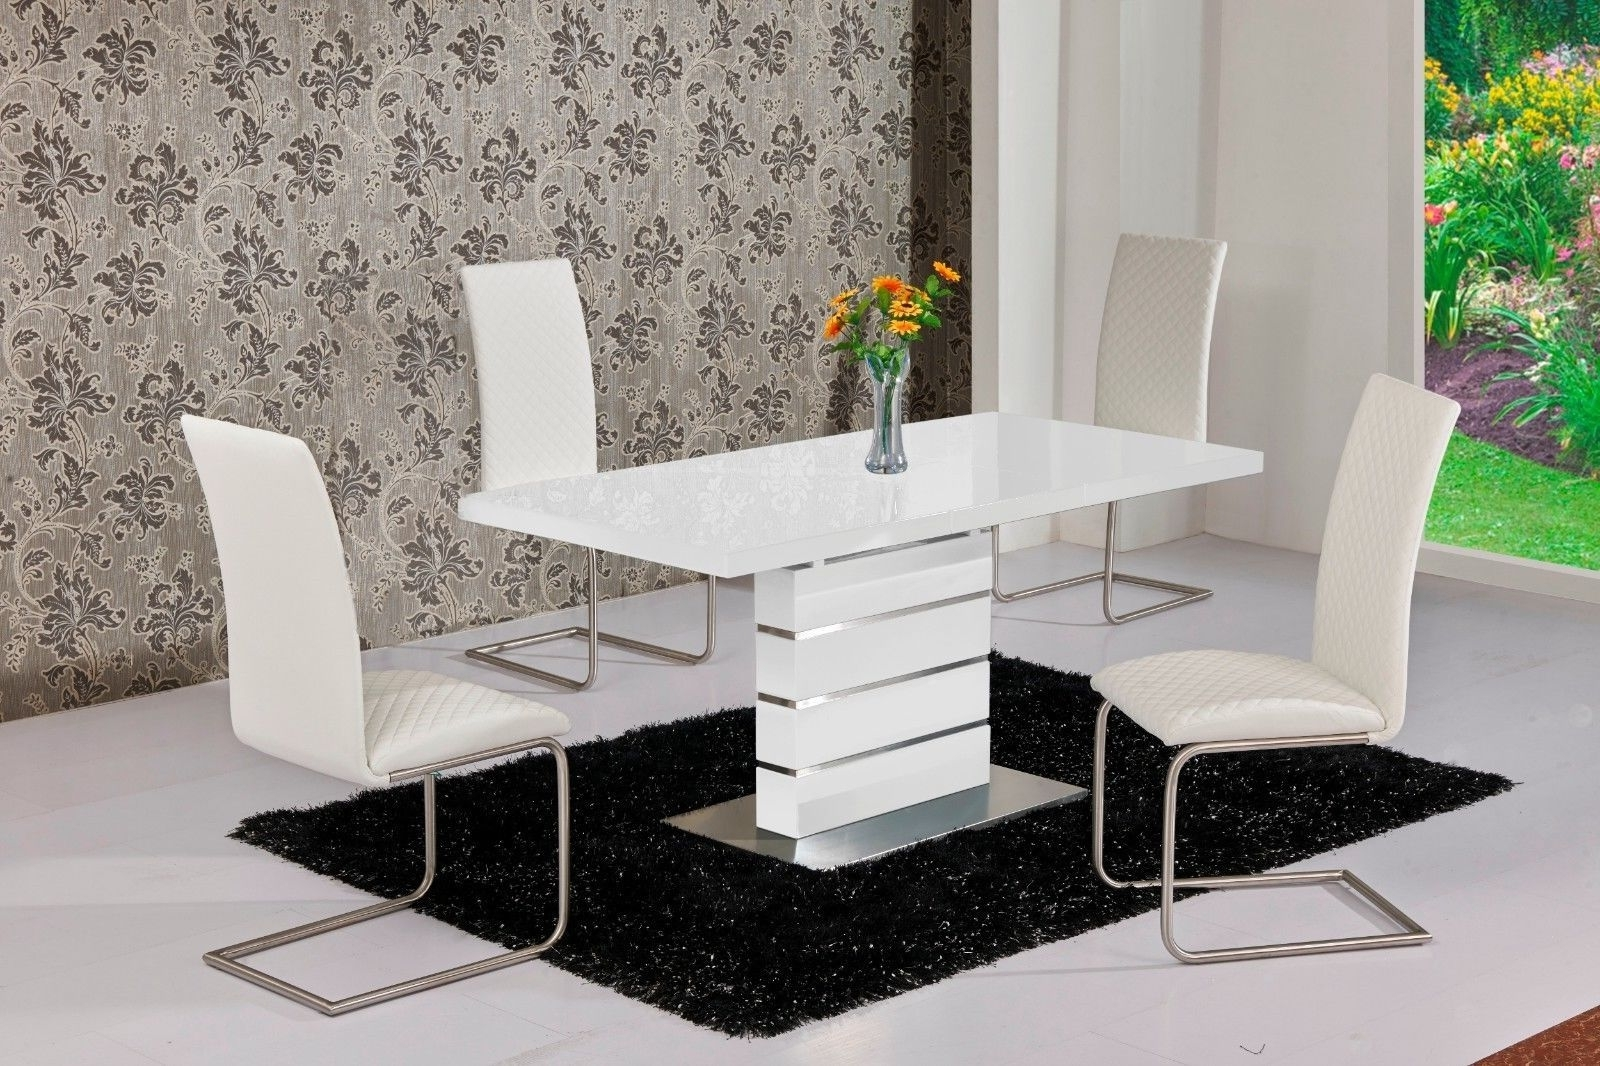 2017 Extending Dining Table And Chairs Inside Mace High Gloss Extending 120 160 Dining Table & Chair Set – White (View 2 of 25)